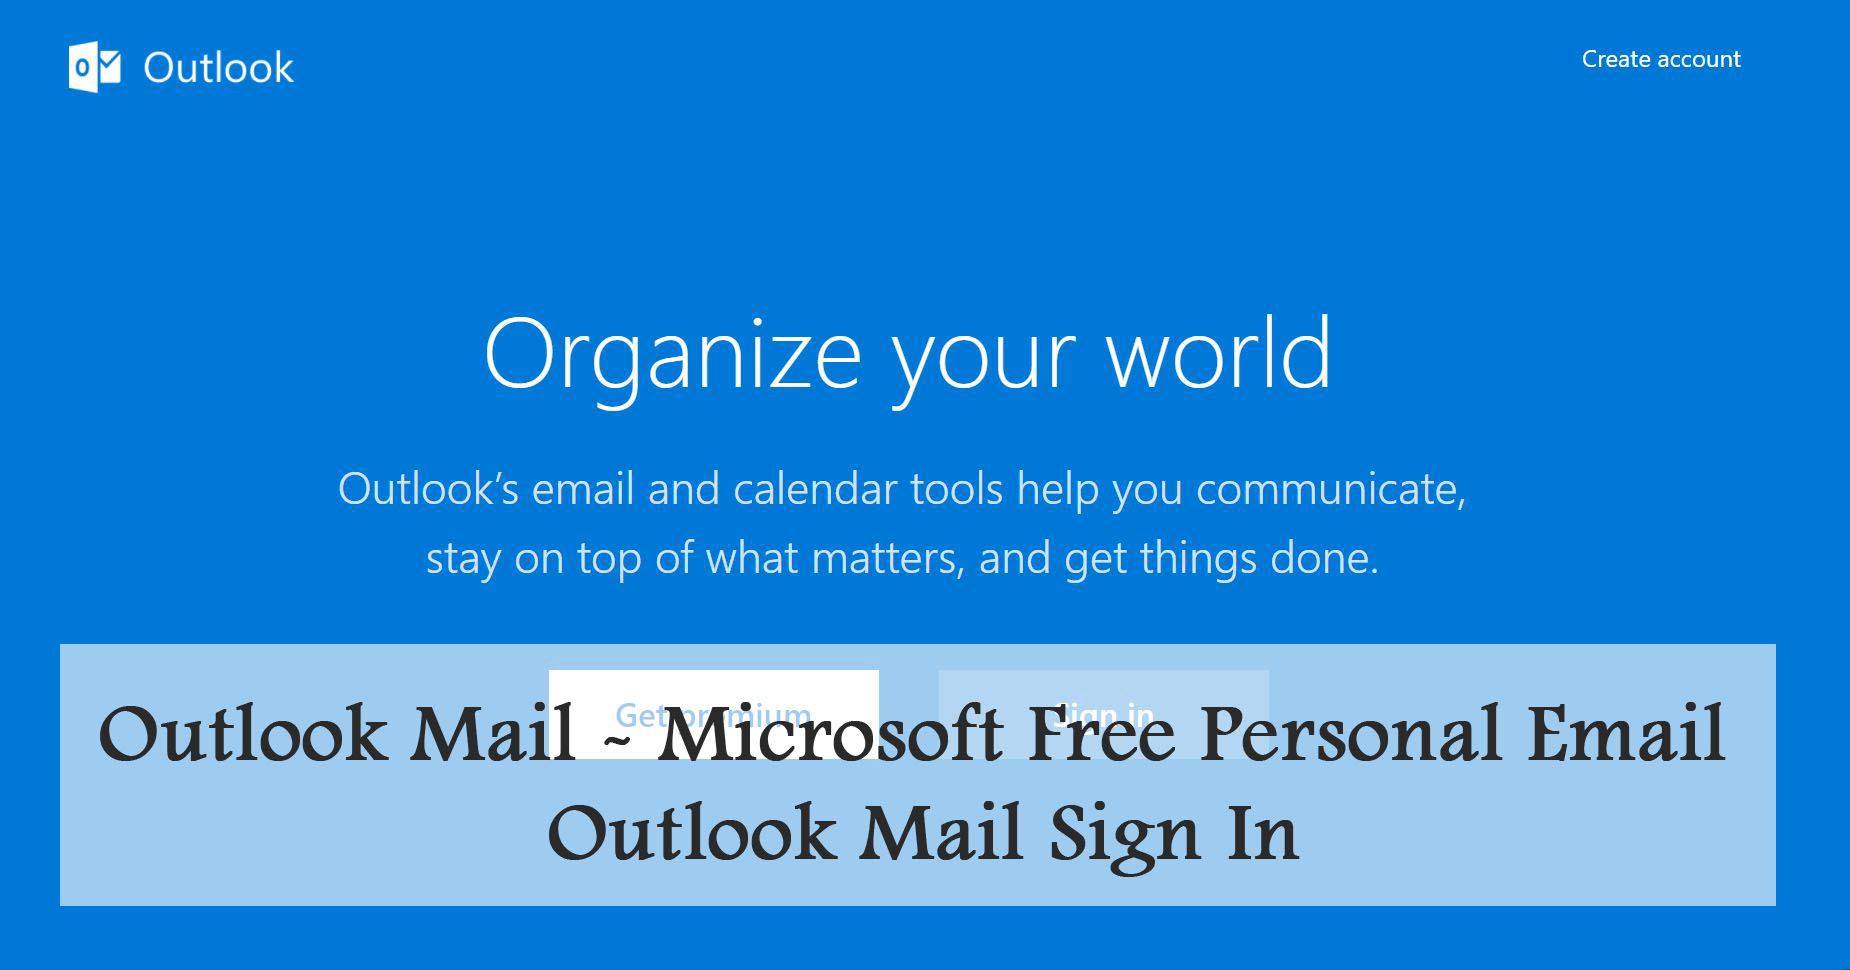 Microsoft Email – Microsoft Free Personal Email